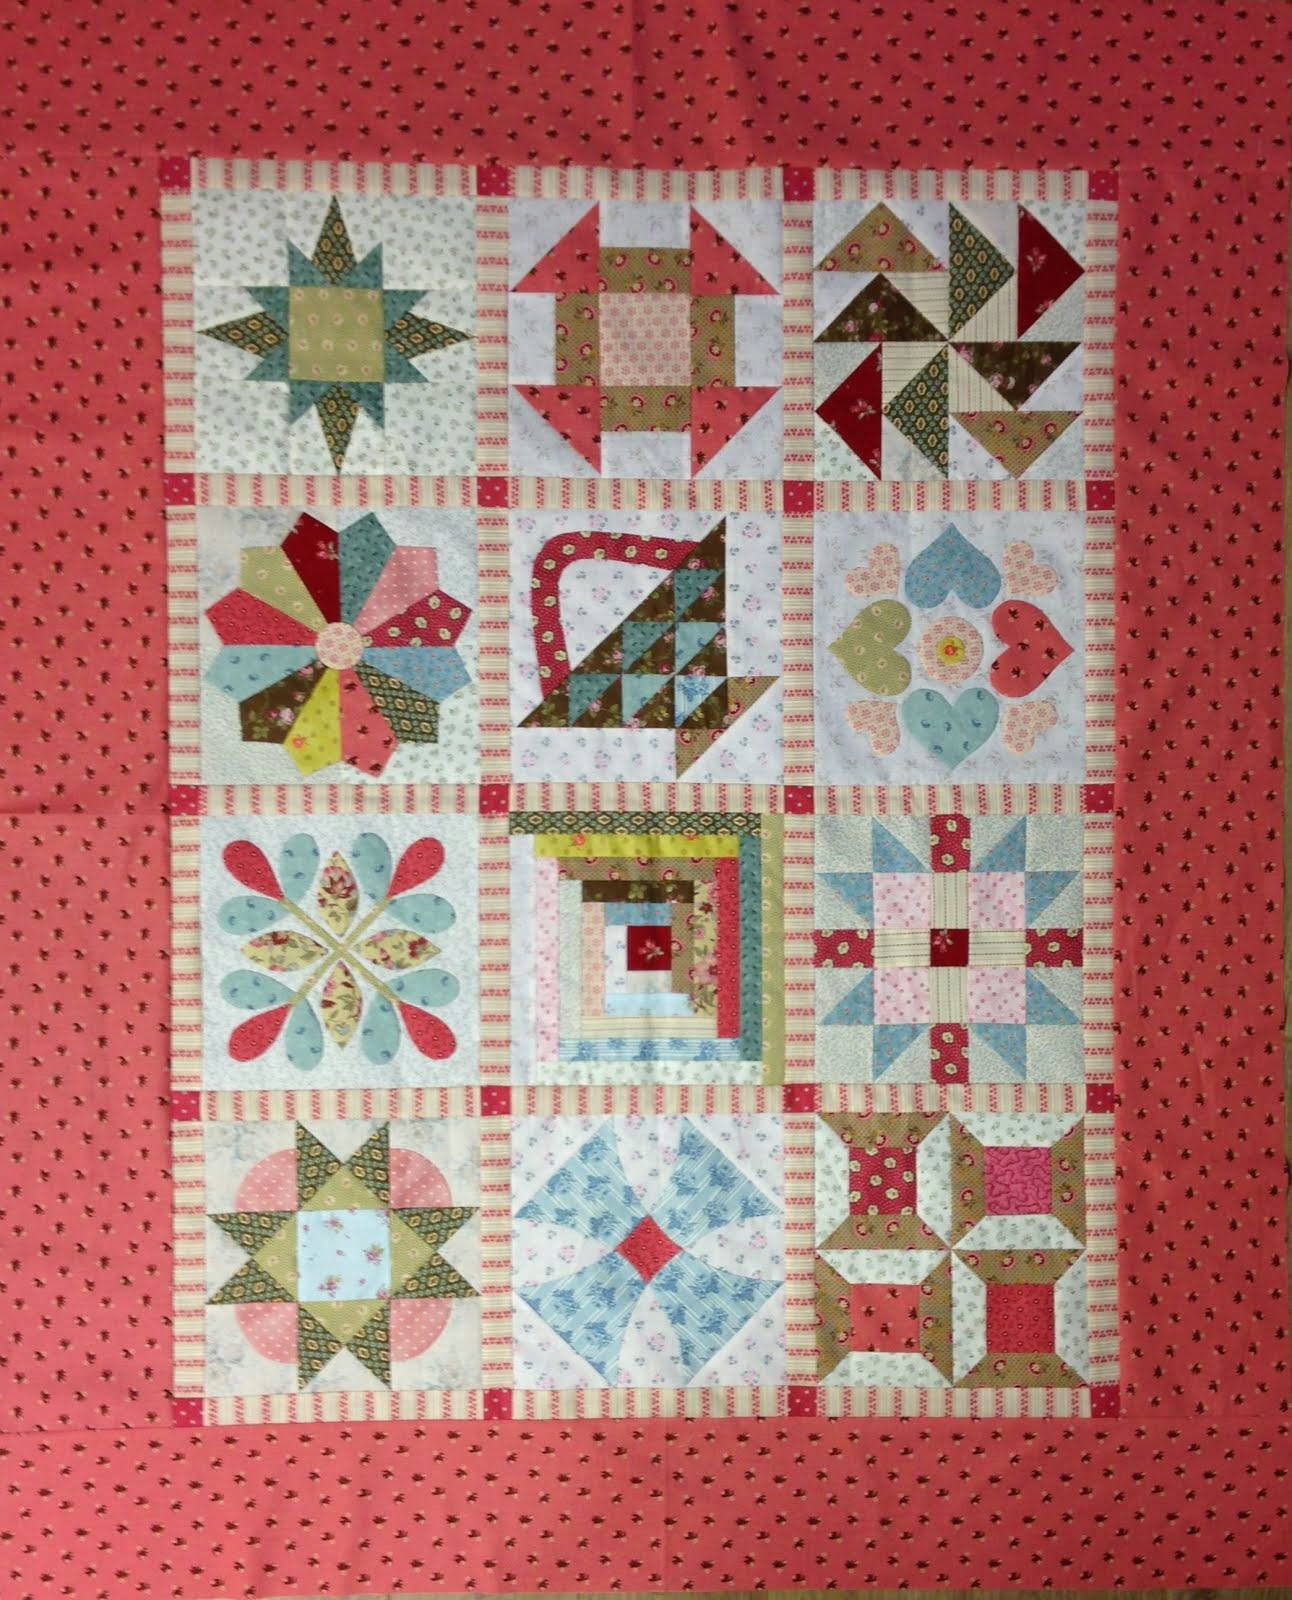 Basiscursus Patchwork (VOL)